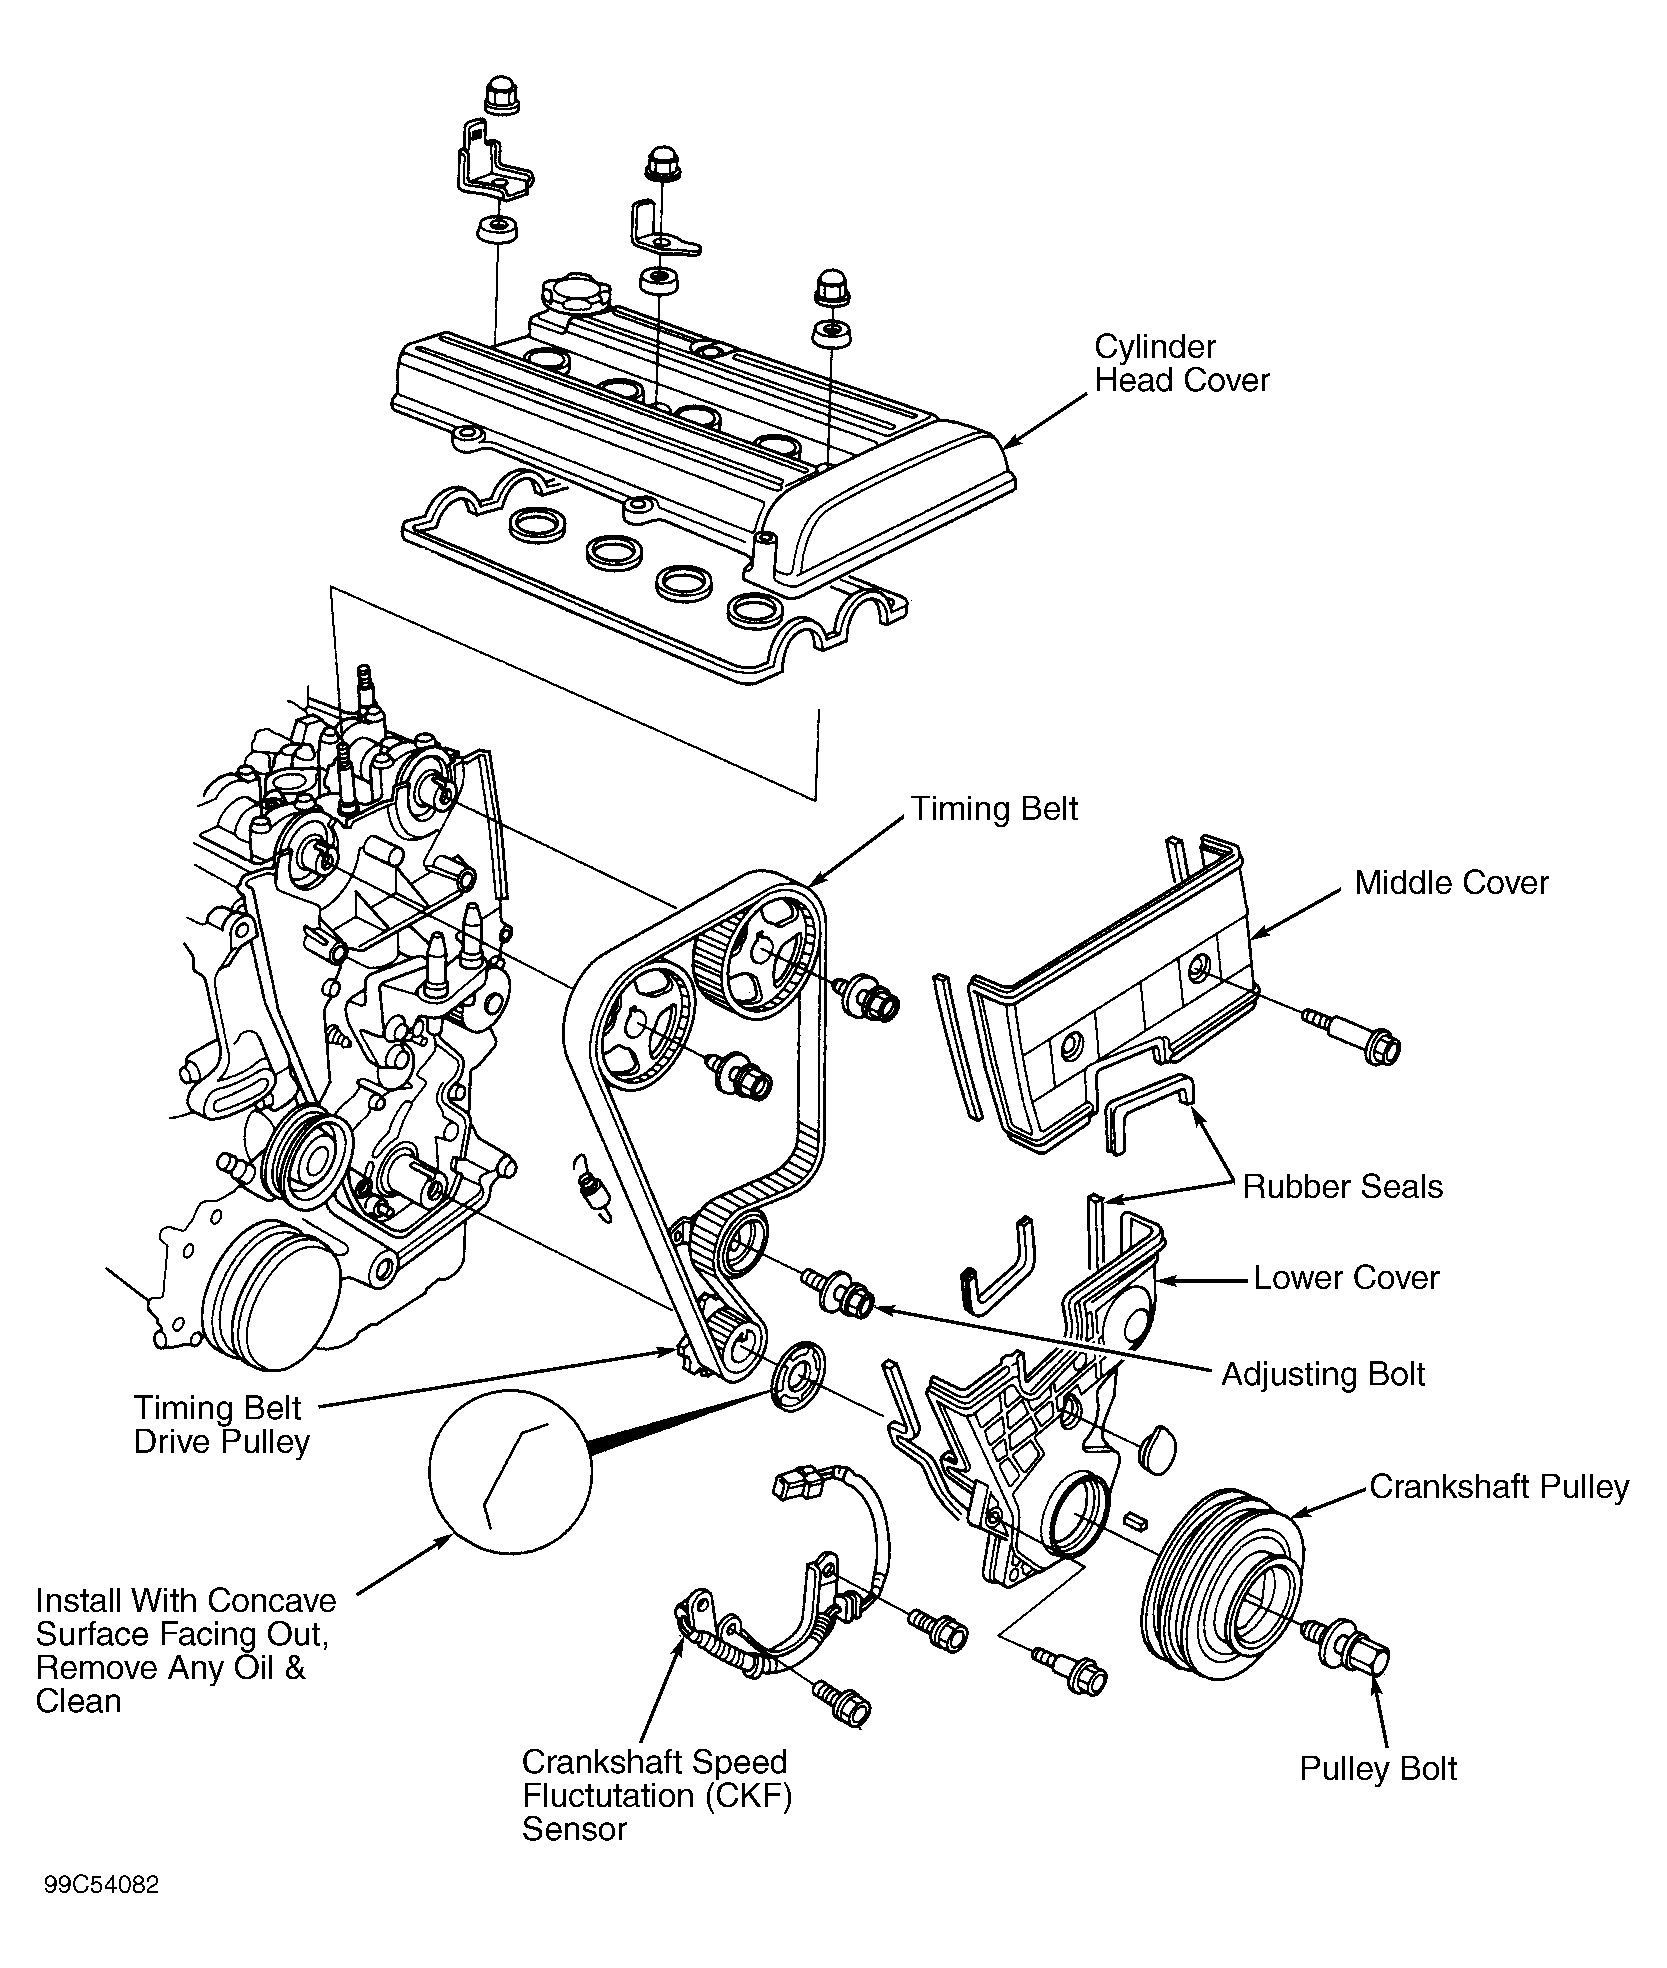 Honda Crv Engine Diagram Wiring Diagram 2003 Ford